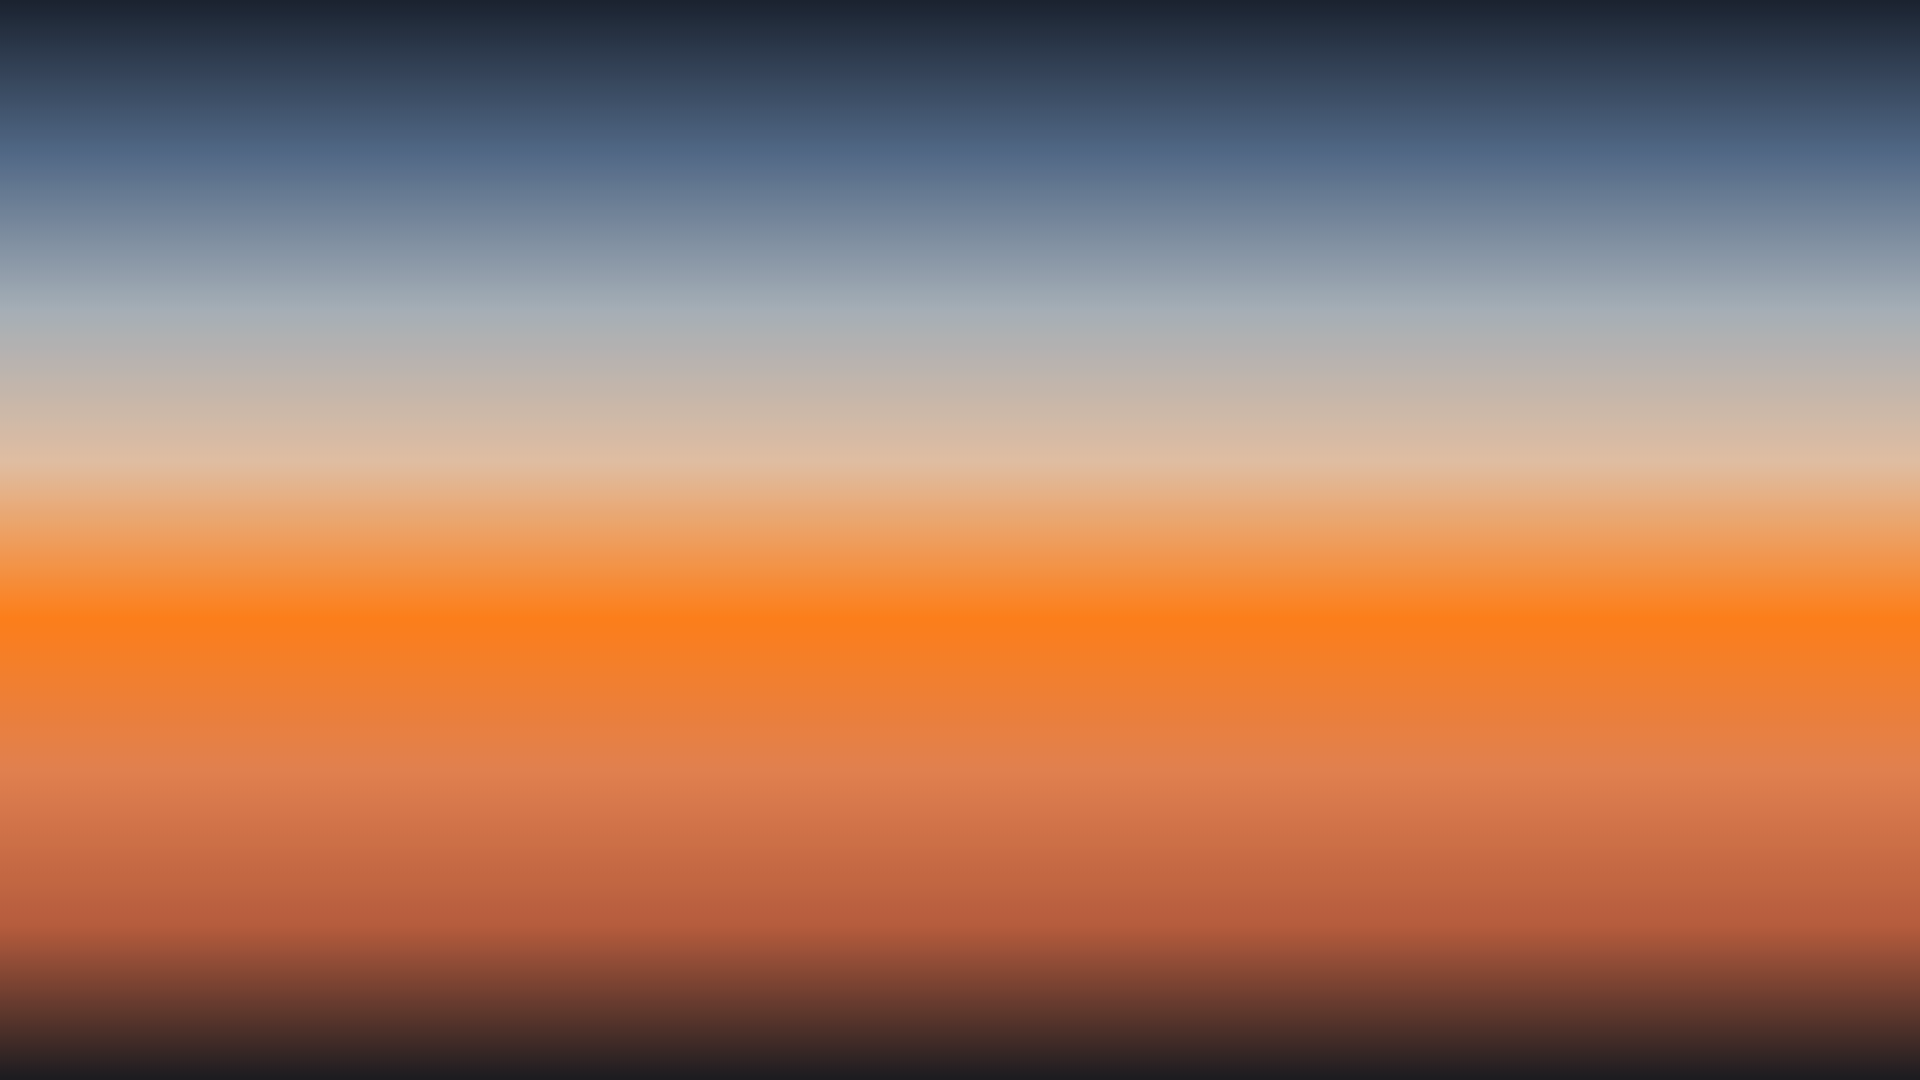 Sunset Gradient Css Gradients Color Gradients